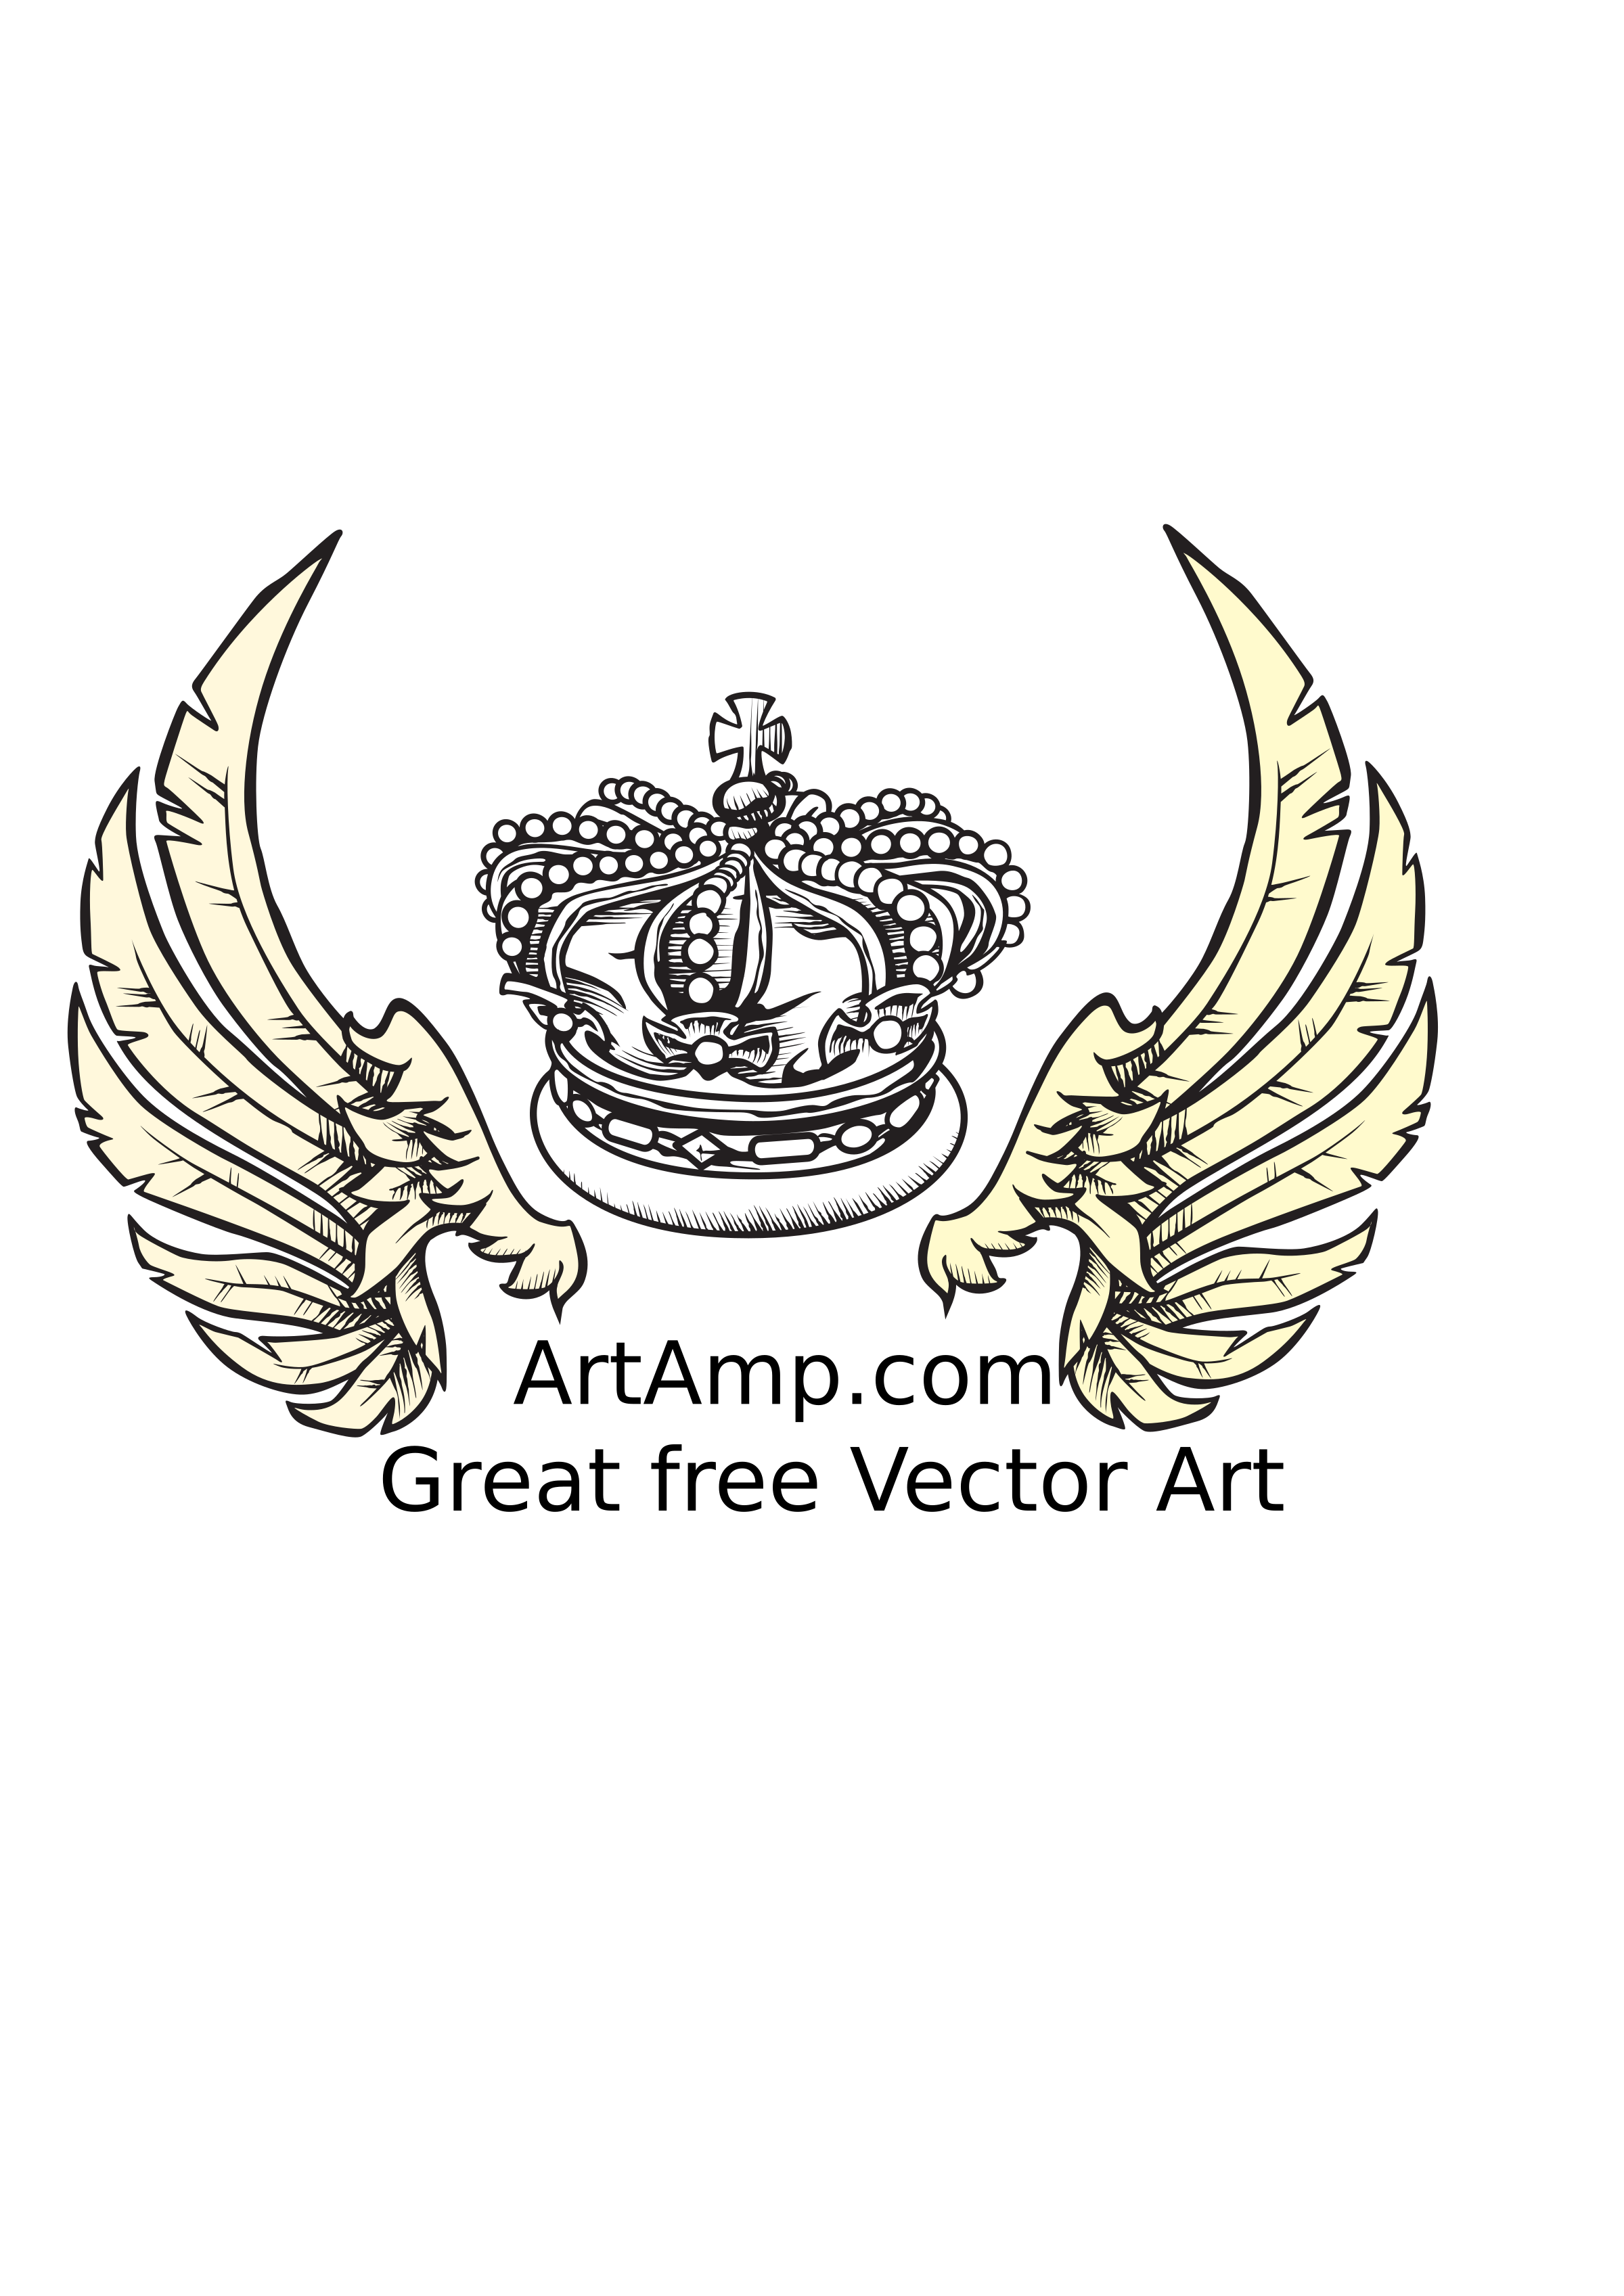 Wing clipart crown. And wings herolday elements